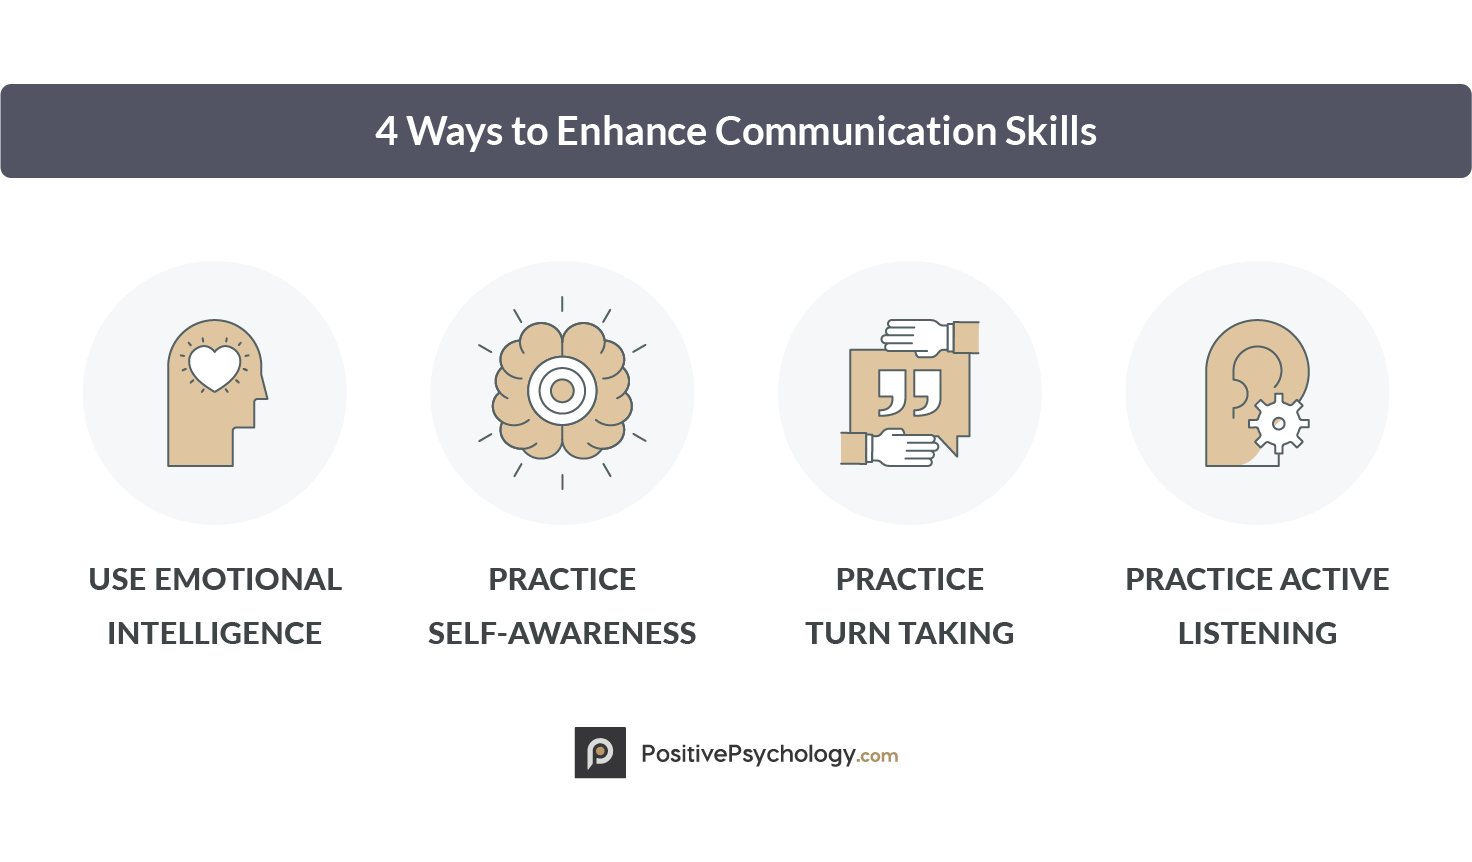 4 Ways to Enhance Communication Skills